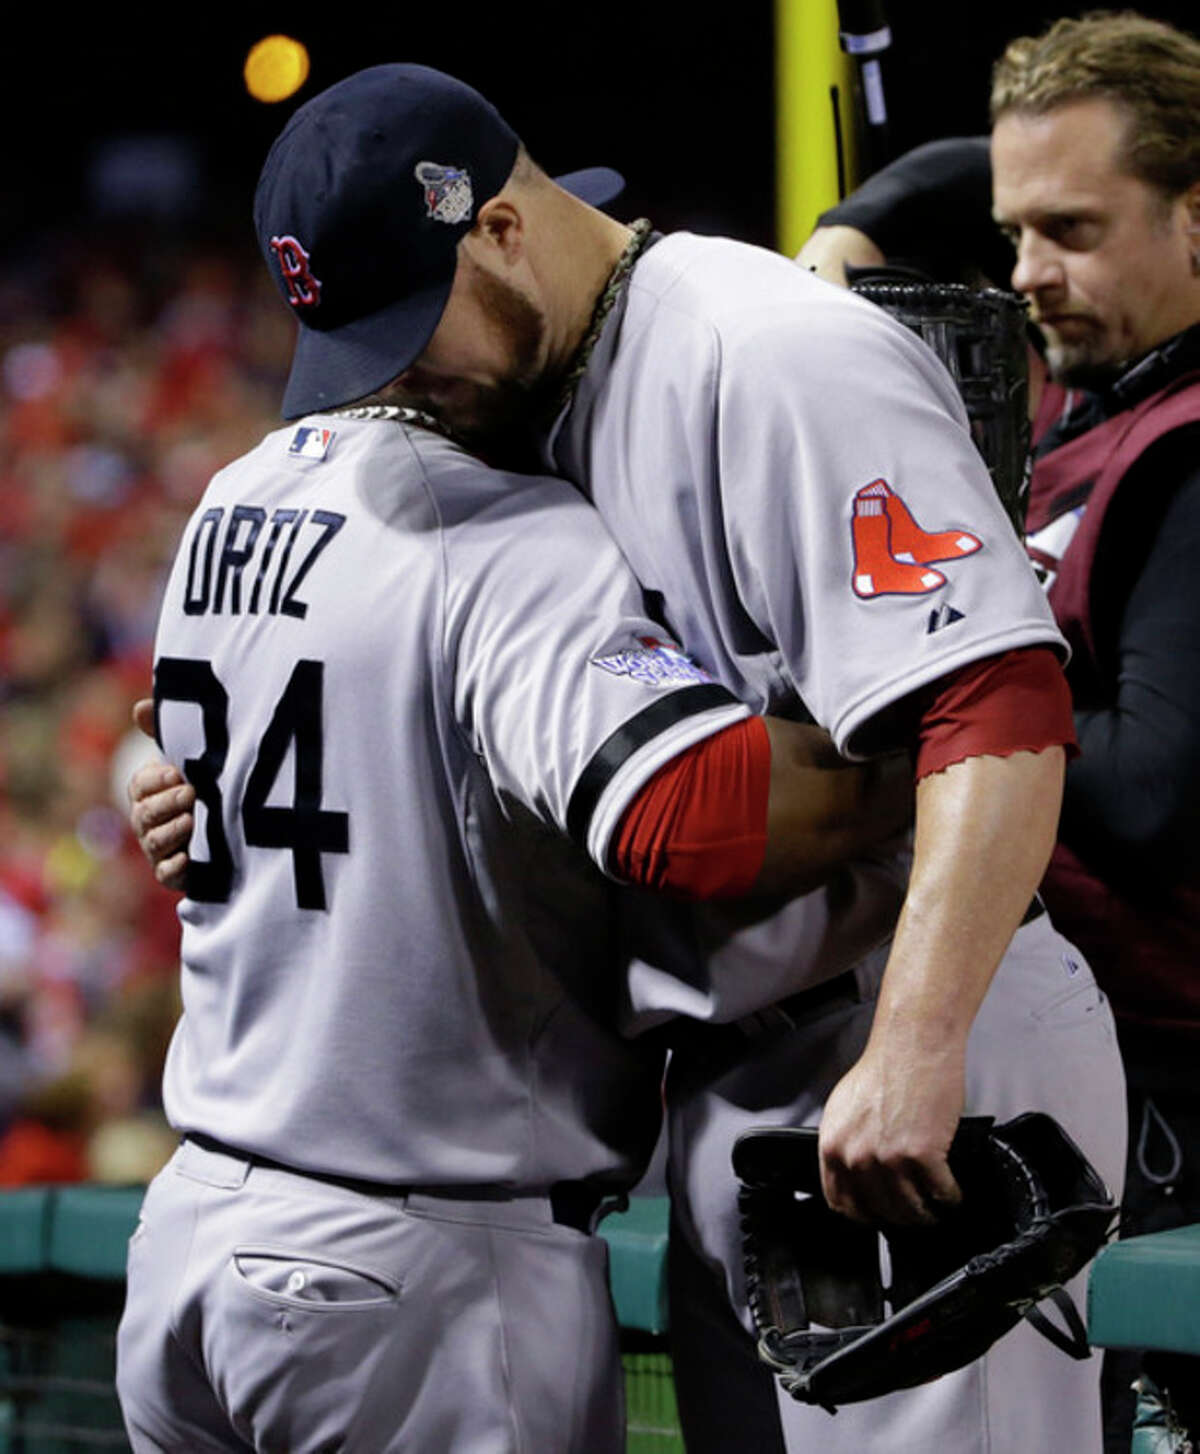 Boston Red Sox David Ortiz, left, hugs Jon Lester after they were pulled from the game during the eighth inning of Game 5 of baseball's World Series against the St. Louis Cardinals Monday, Oct. 28, 2013, in St. Louis. (AP Photo/Matt Slocum)